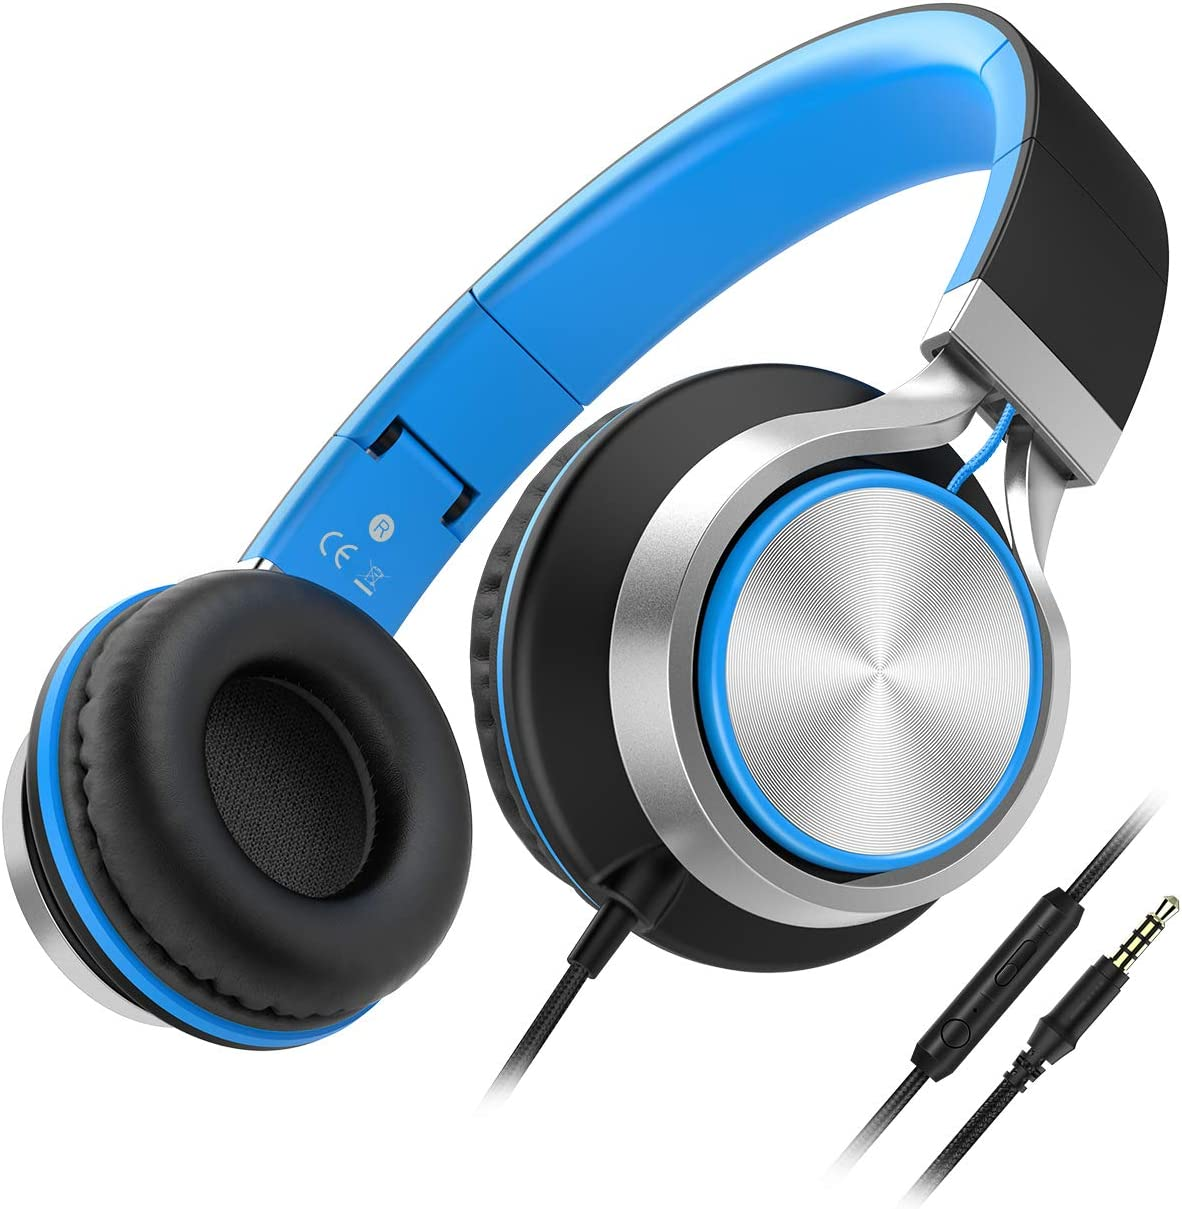 Wired Headphones Besom i77 Folding Stereo Bass Headset with Microphone and Volume Control Over-Ear Earphones for Adults Teens Running Sport Travel(Black/Blue)